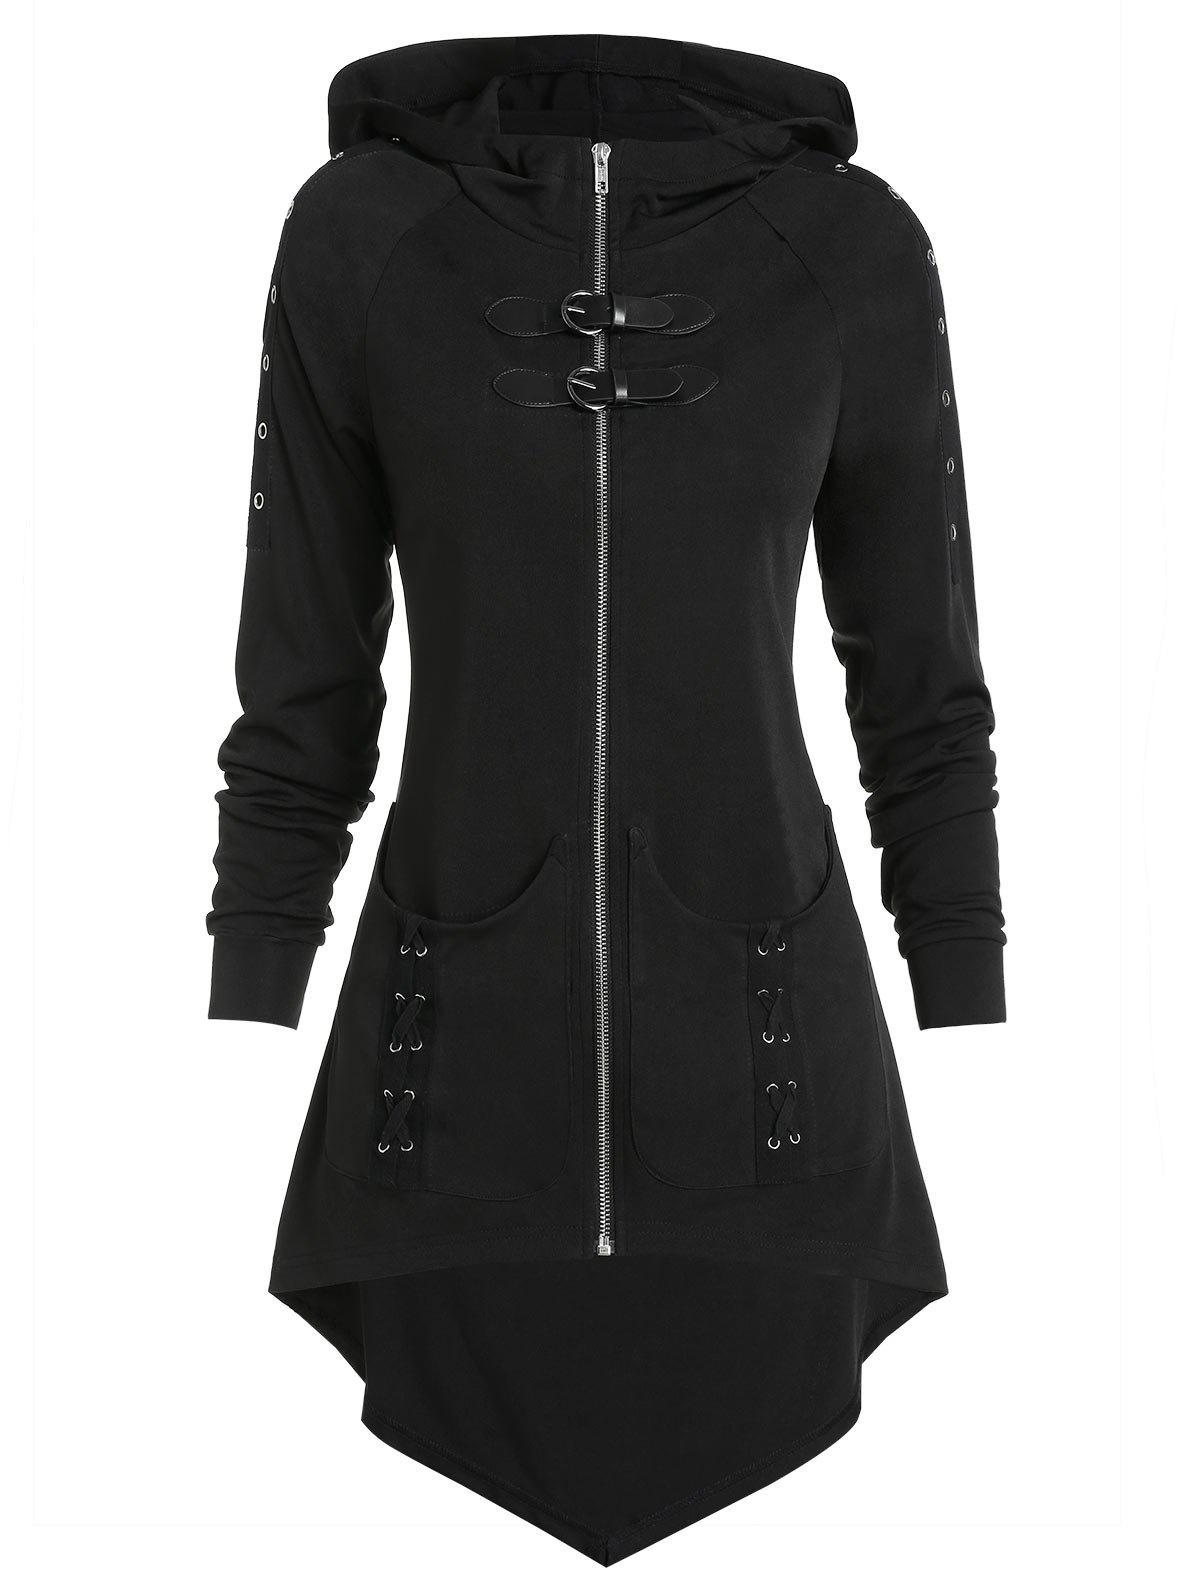 Shop Dual Buckle Zip Up High Low Gothic Jacket